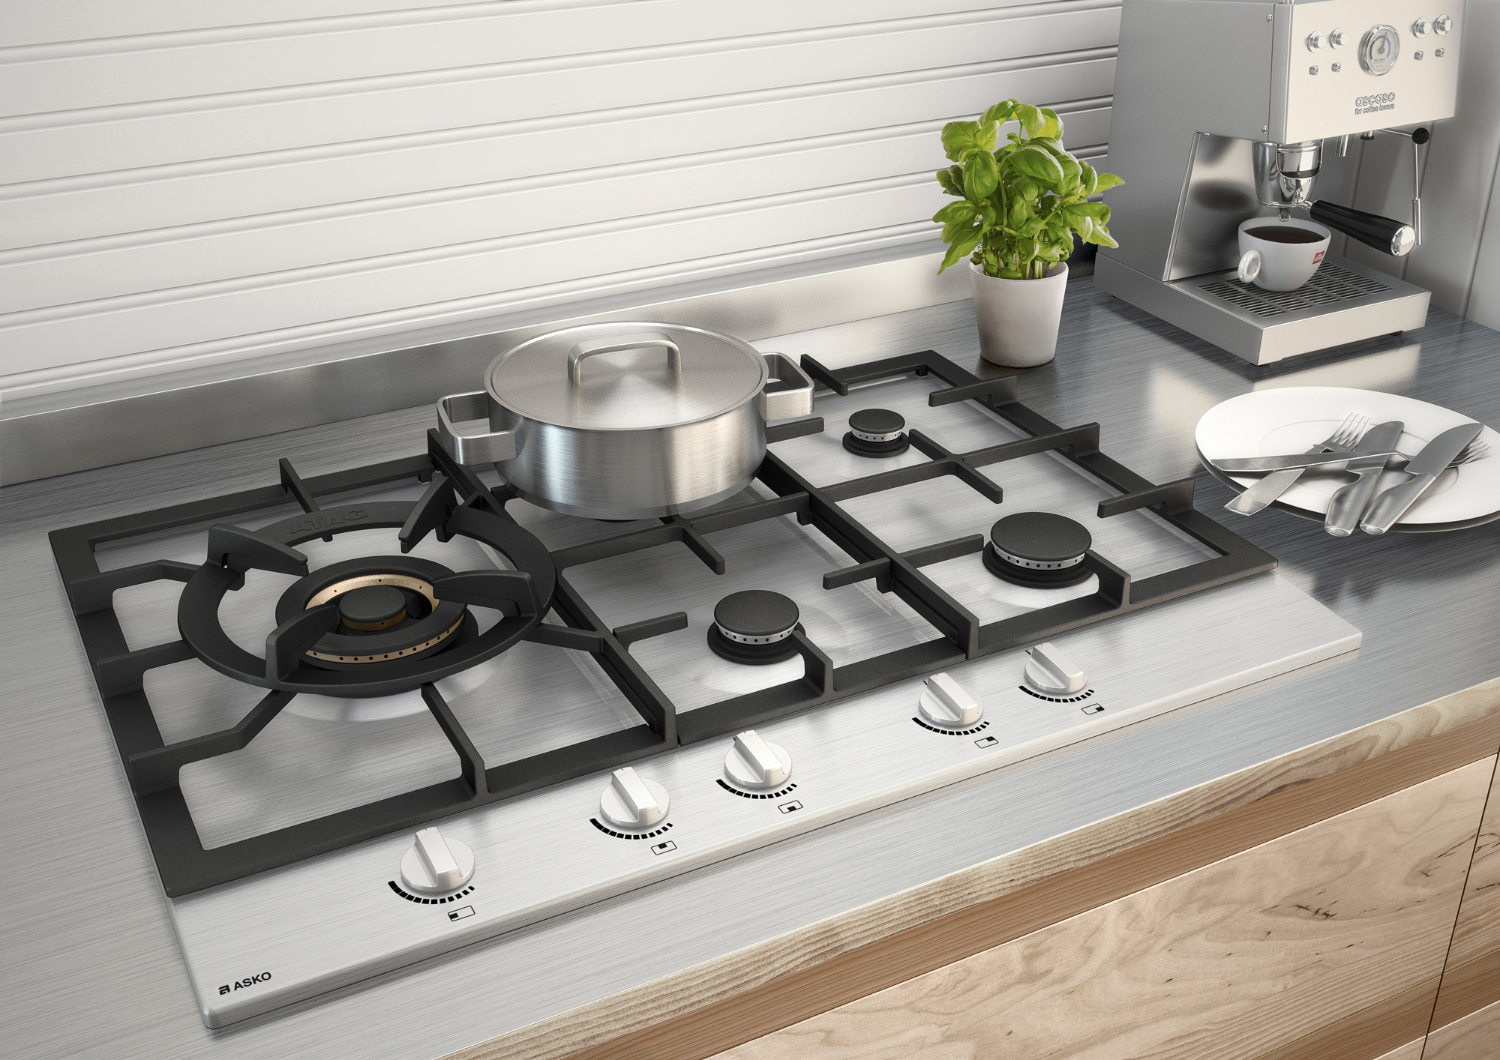 Gas cooktops - Stainless gas cooktops and wok burner - Asko ...